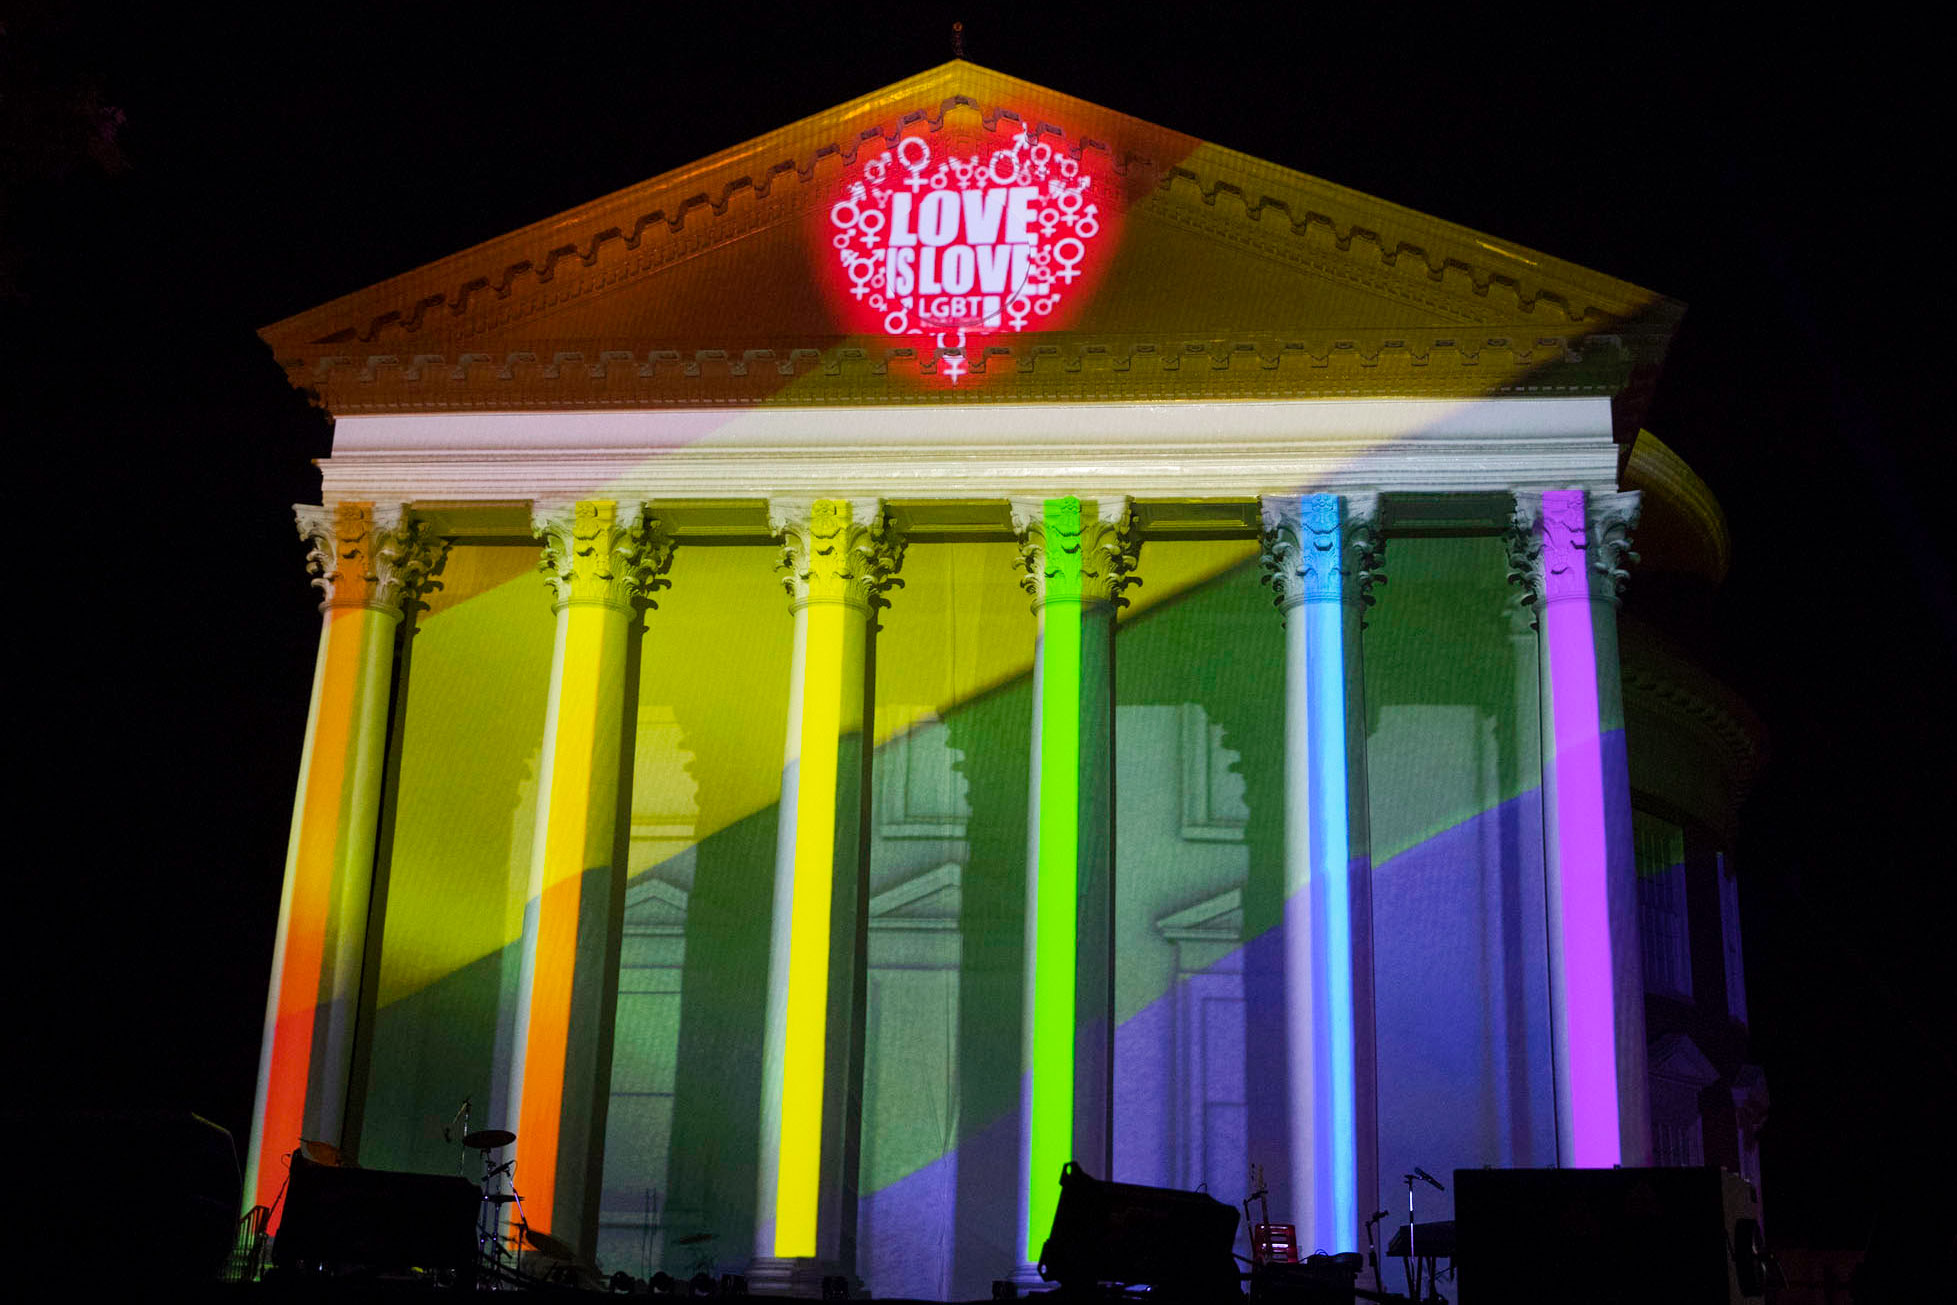 The Rotunda was awash in colors representing UVA's LGBTQ community at last year's bicentennial celebration.